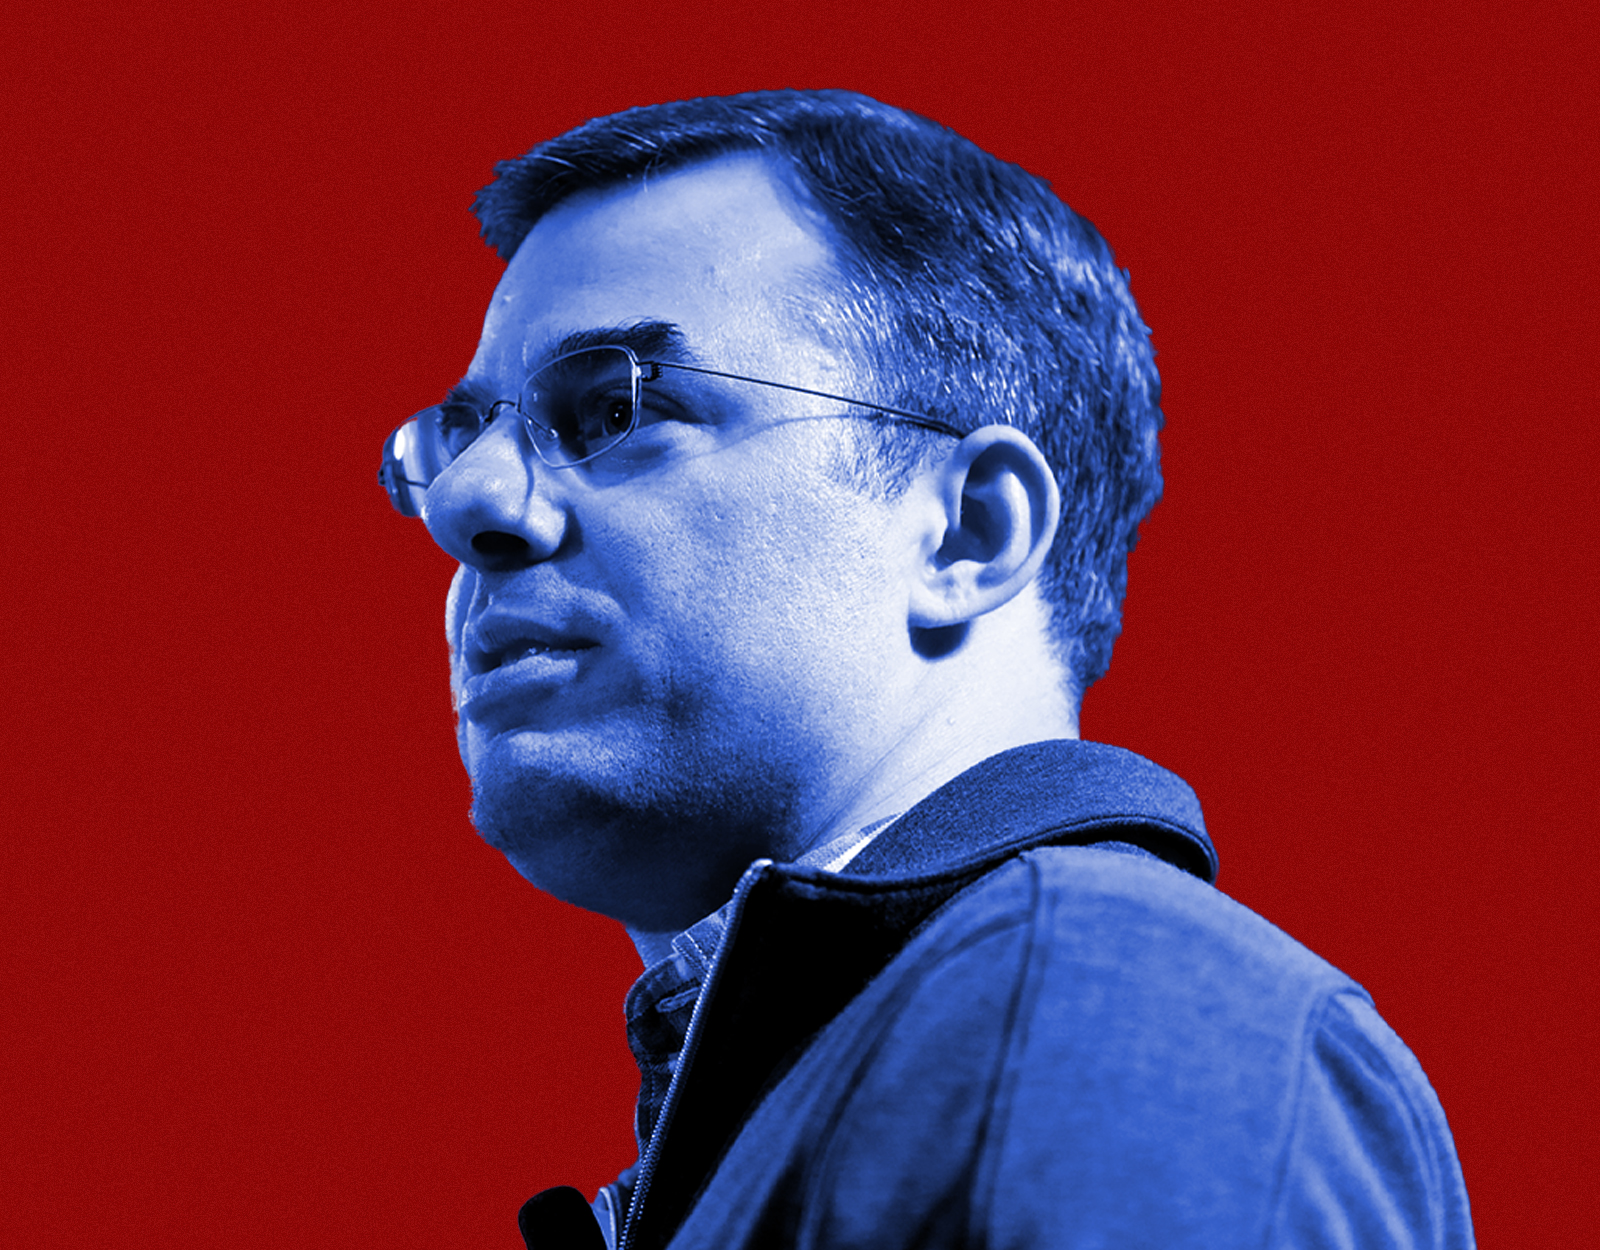 Justin Amash Could Keep Trump From Getting Re-Elected